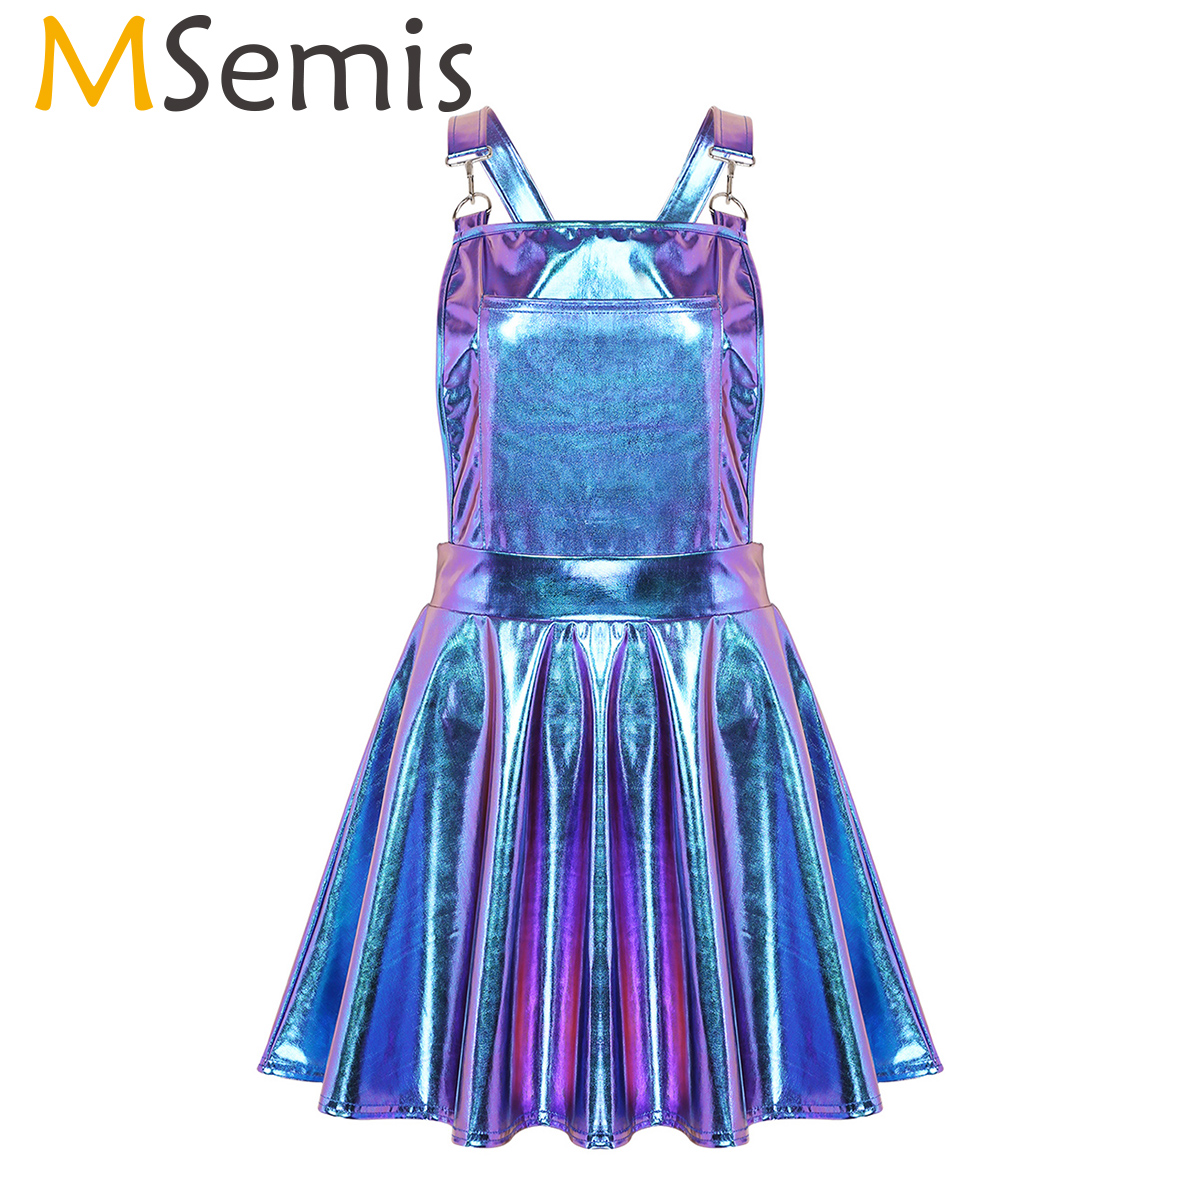 Women Shiny Metallic Holographic Dress Rave Festival Clothes Costumes Night Club Singer Dancewear Braces Mini Suspender Dresses